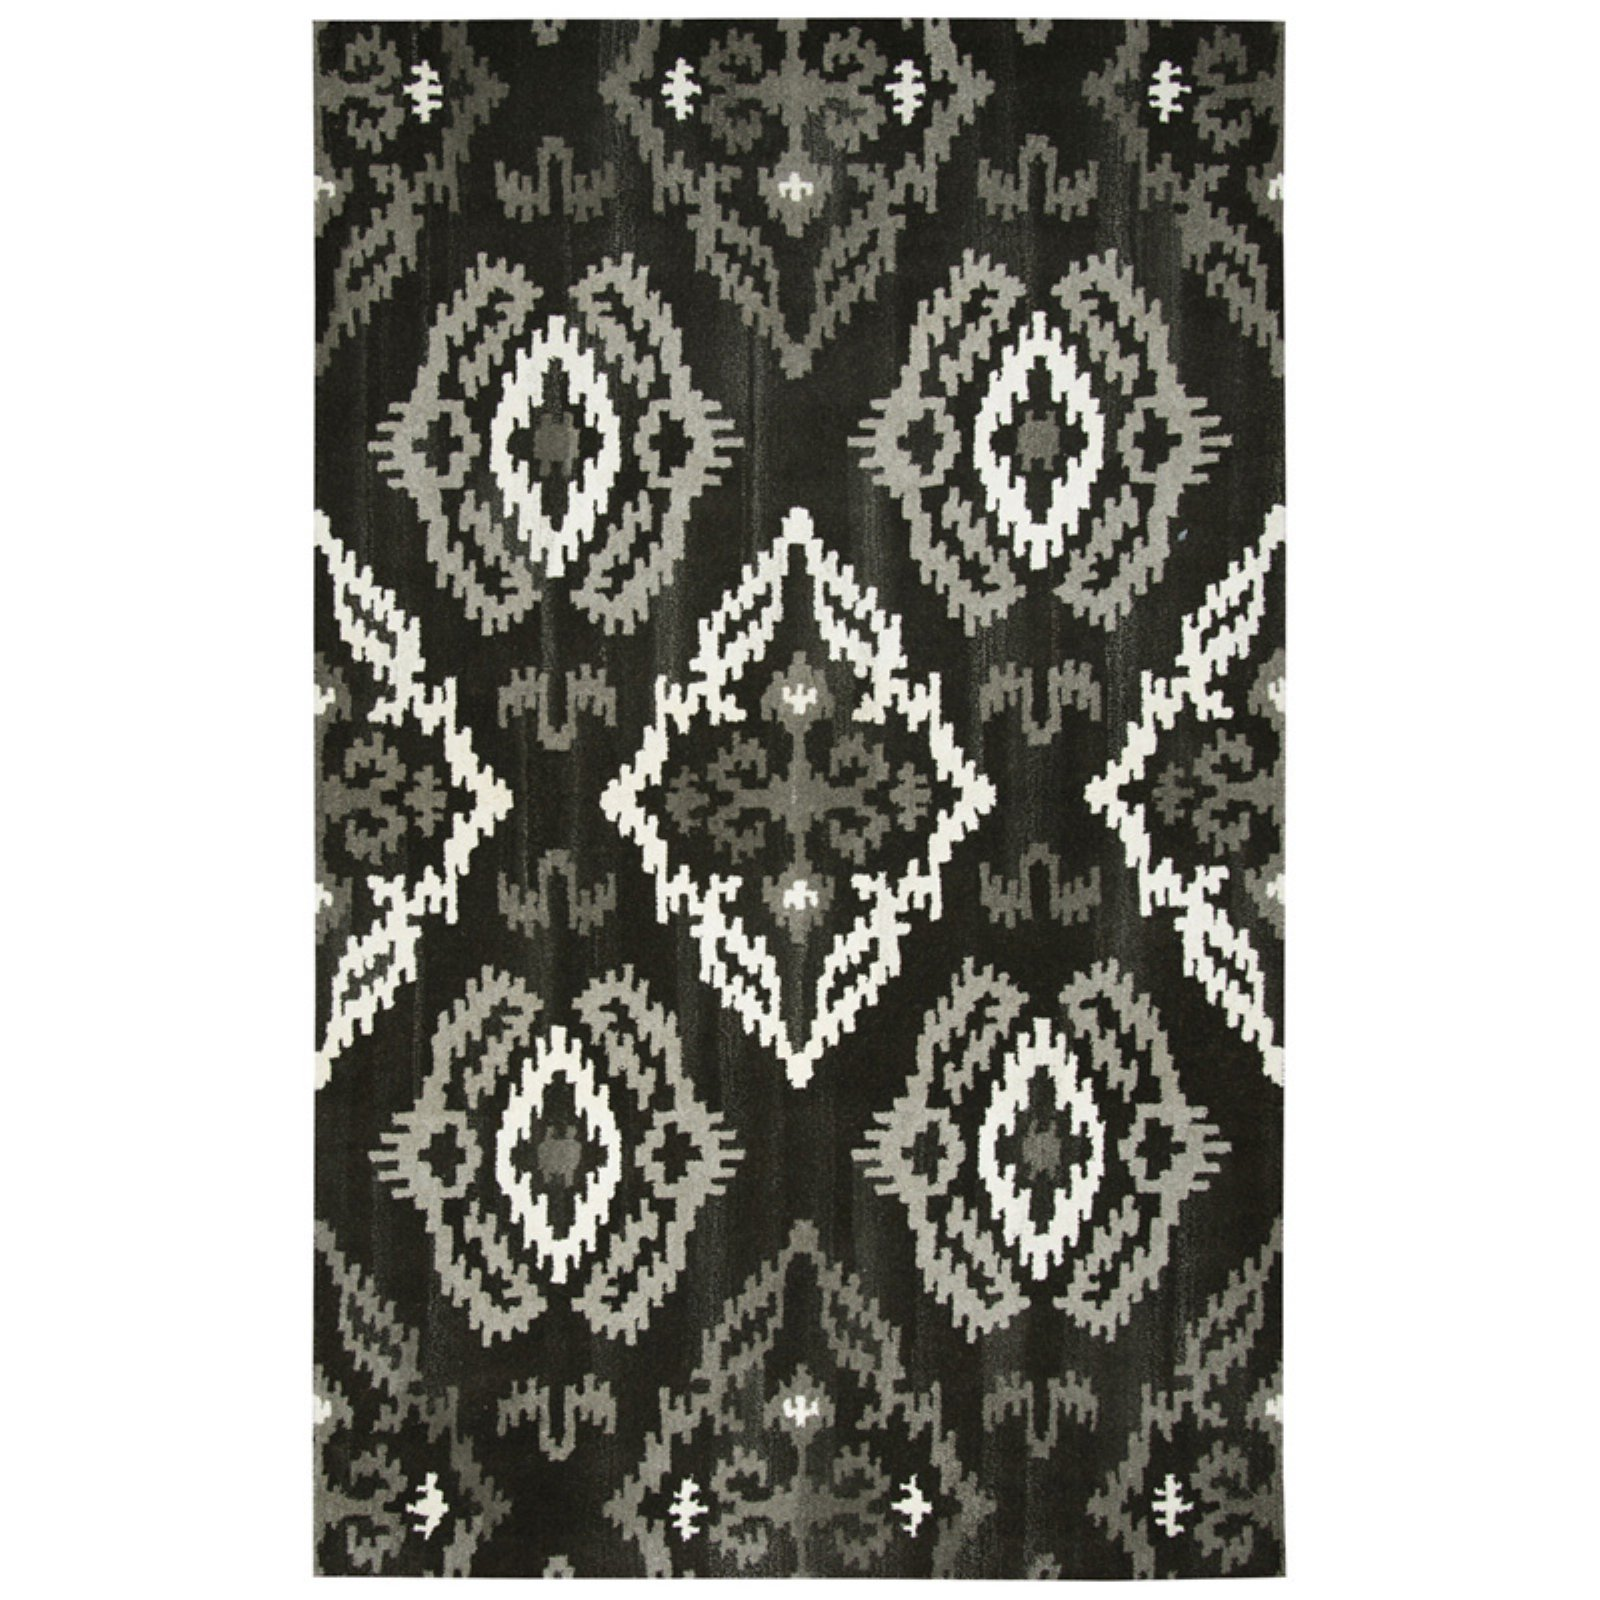 RIZZY HOME SUFFOLK COLLECTIONS SK252A 9' x 12' AREA RUGS